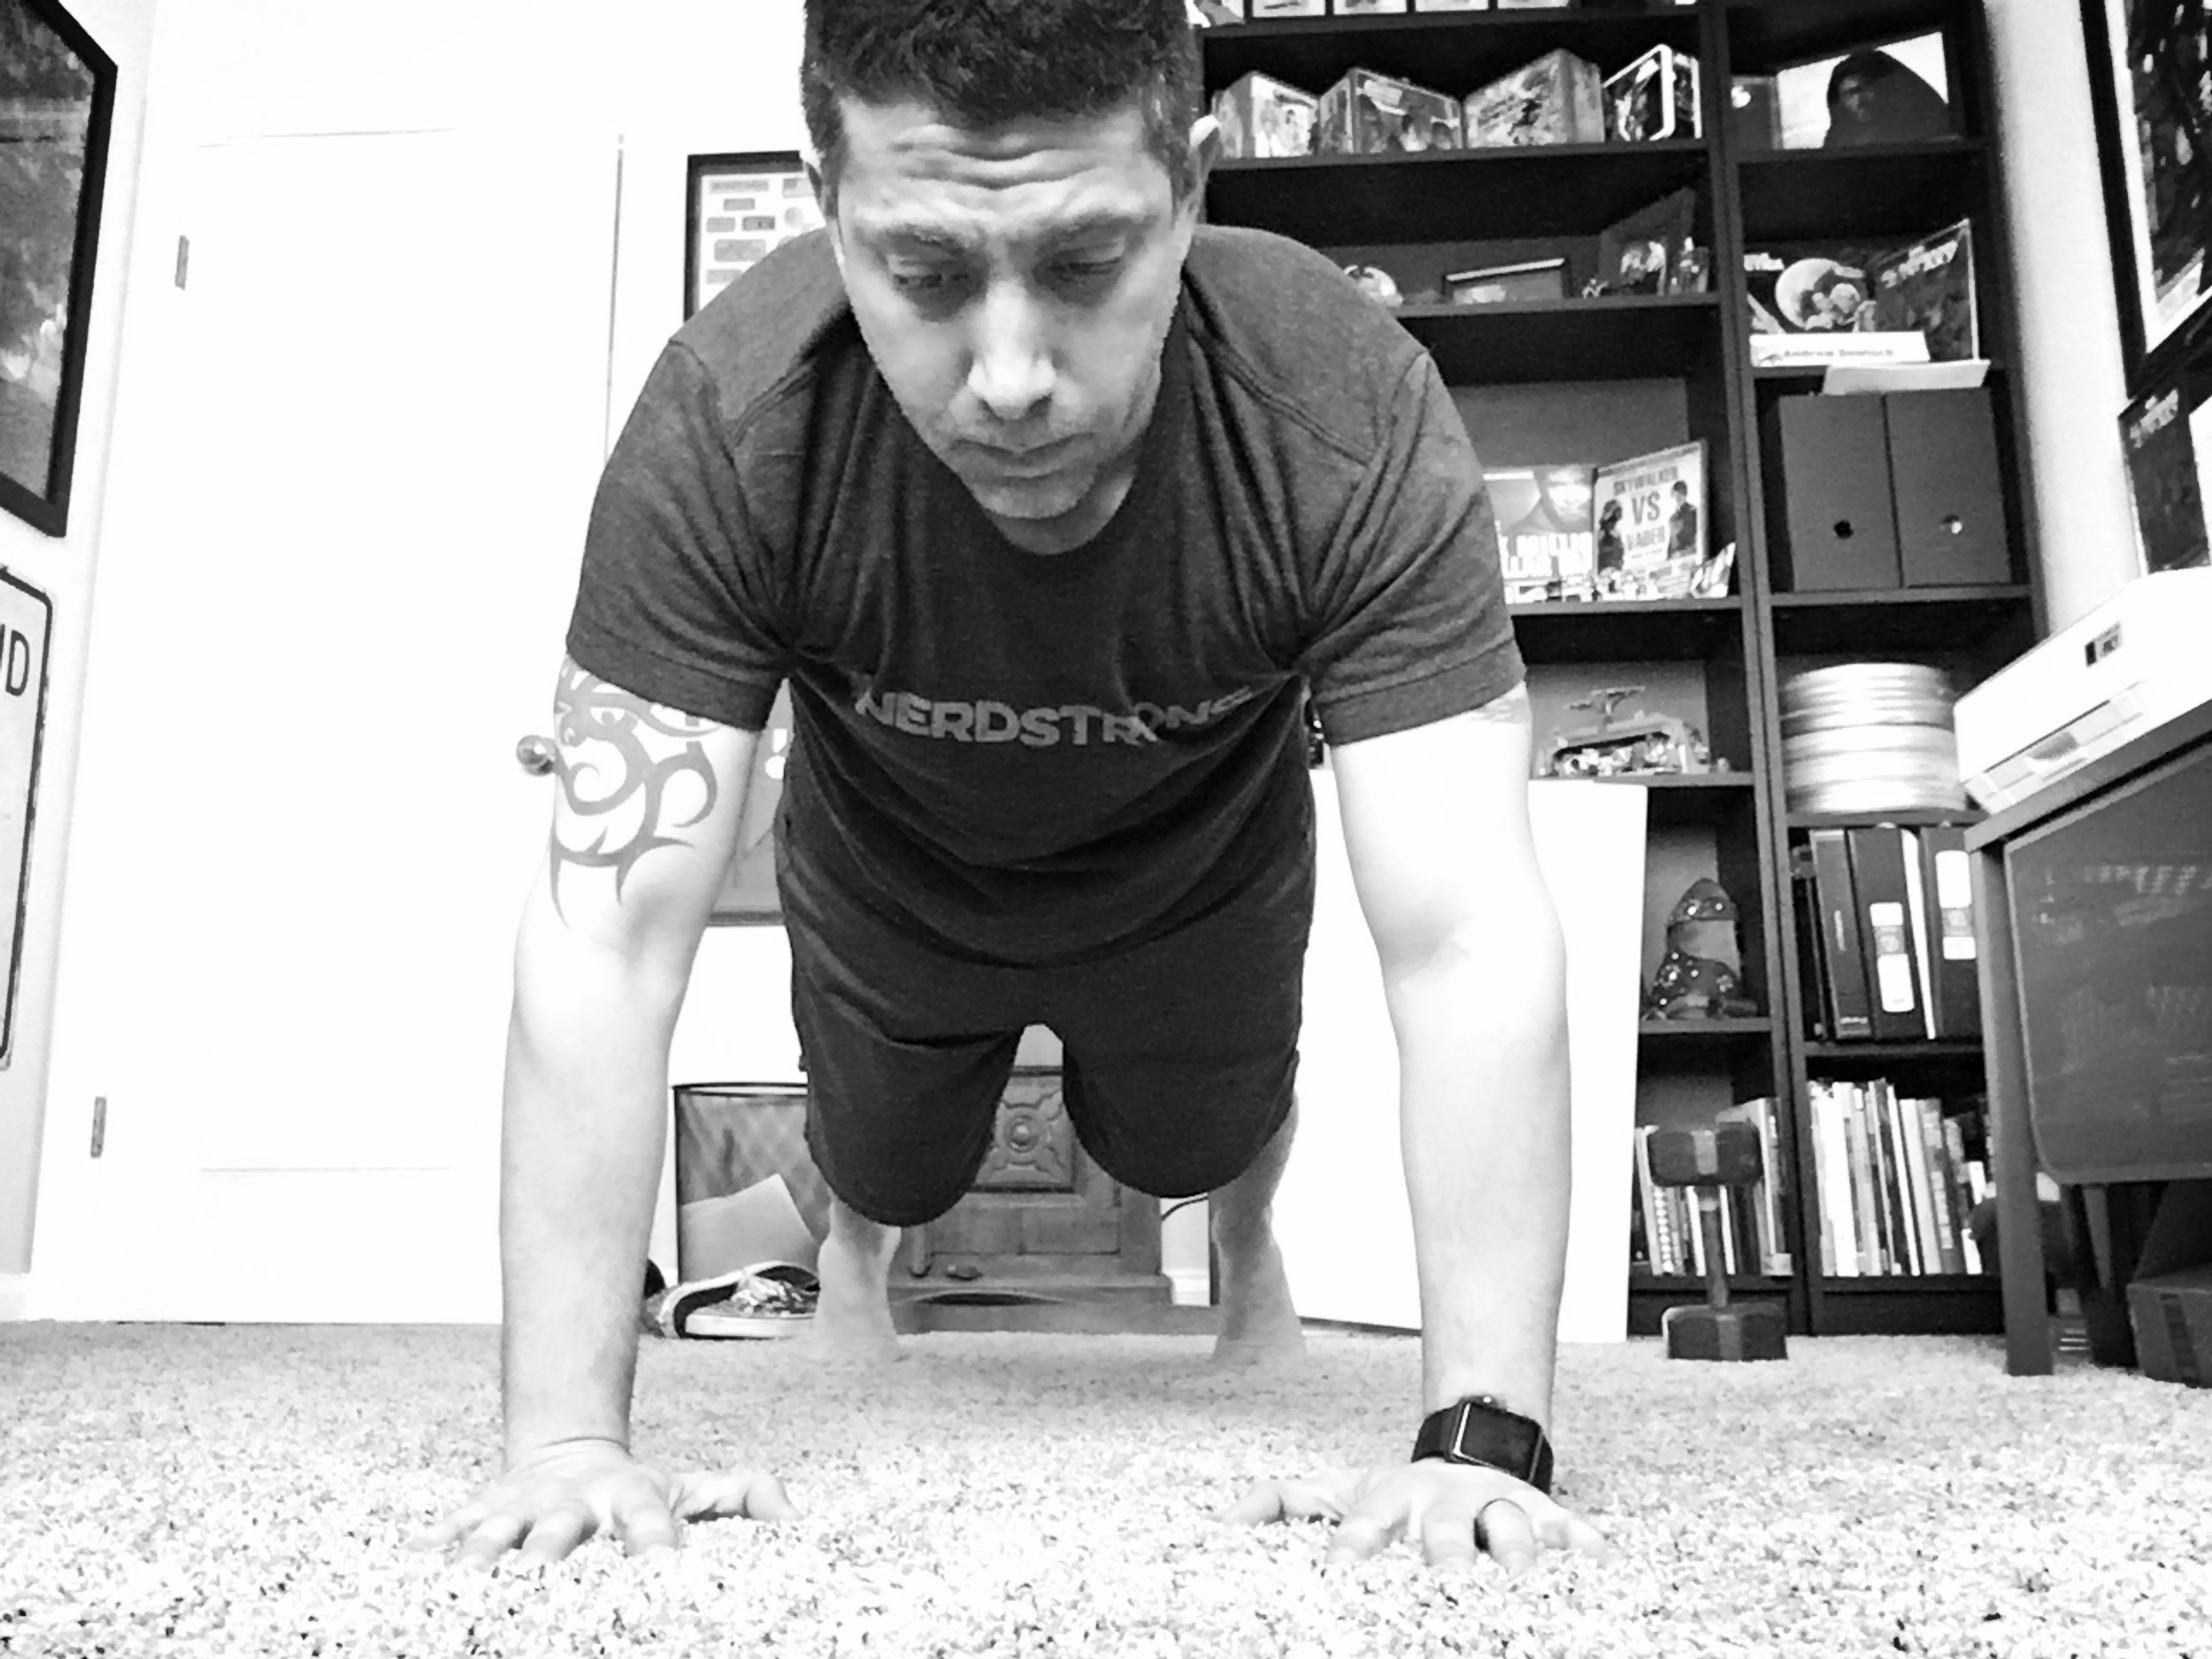 Plank position should be solid.